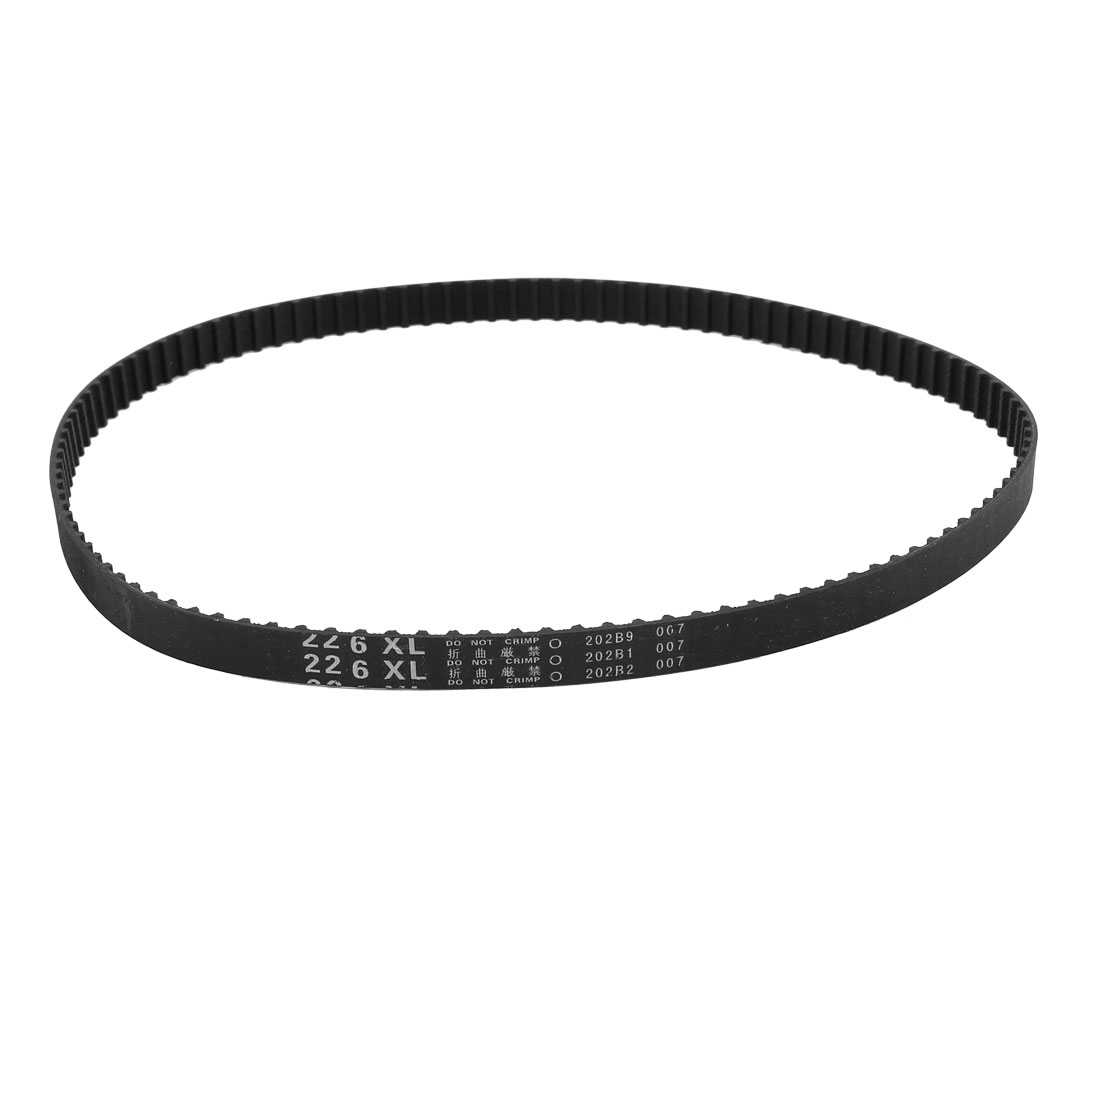 "226XL 22.6"" Girth 5.08mm Pitch 113-Teeth Black Rubber Industrial Synchro Machine Synchronous Timing Belt"